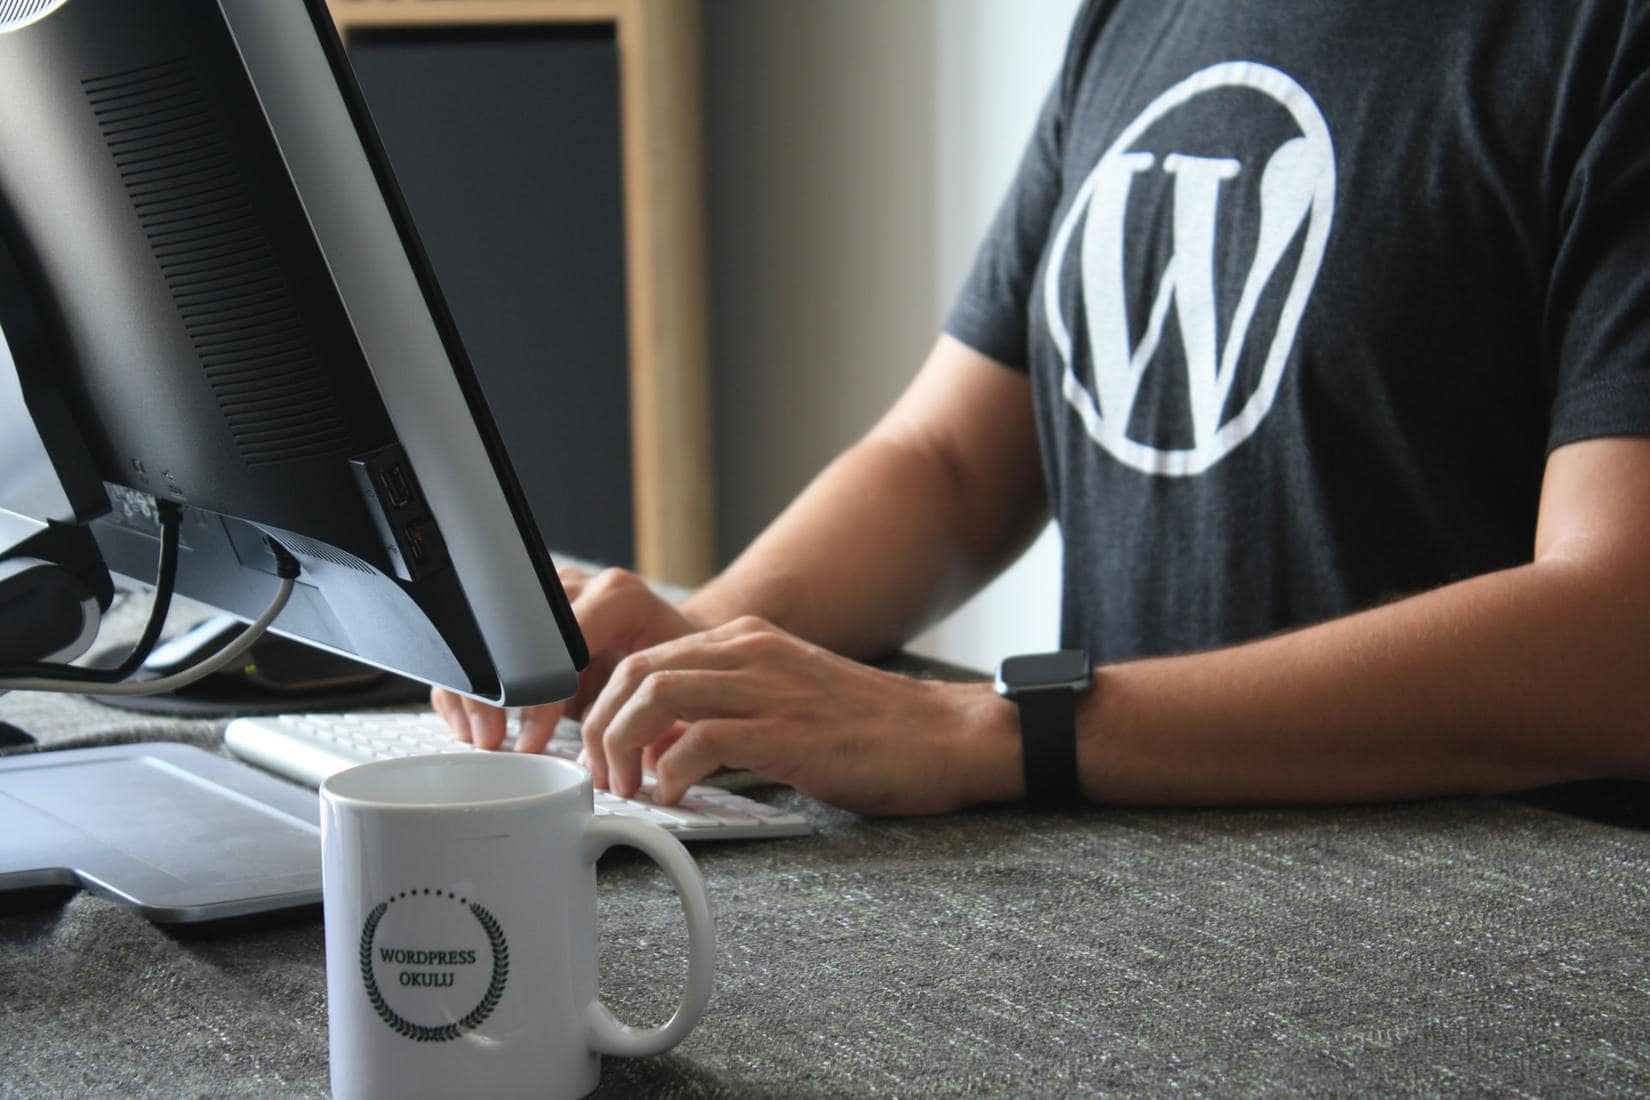 Man wearing WordPress shirt